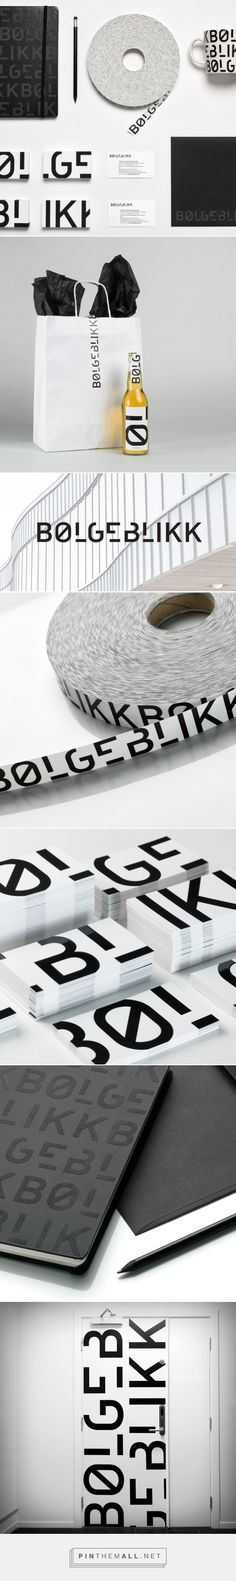 Bølgeblikk - Tank Design branding packaging